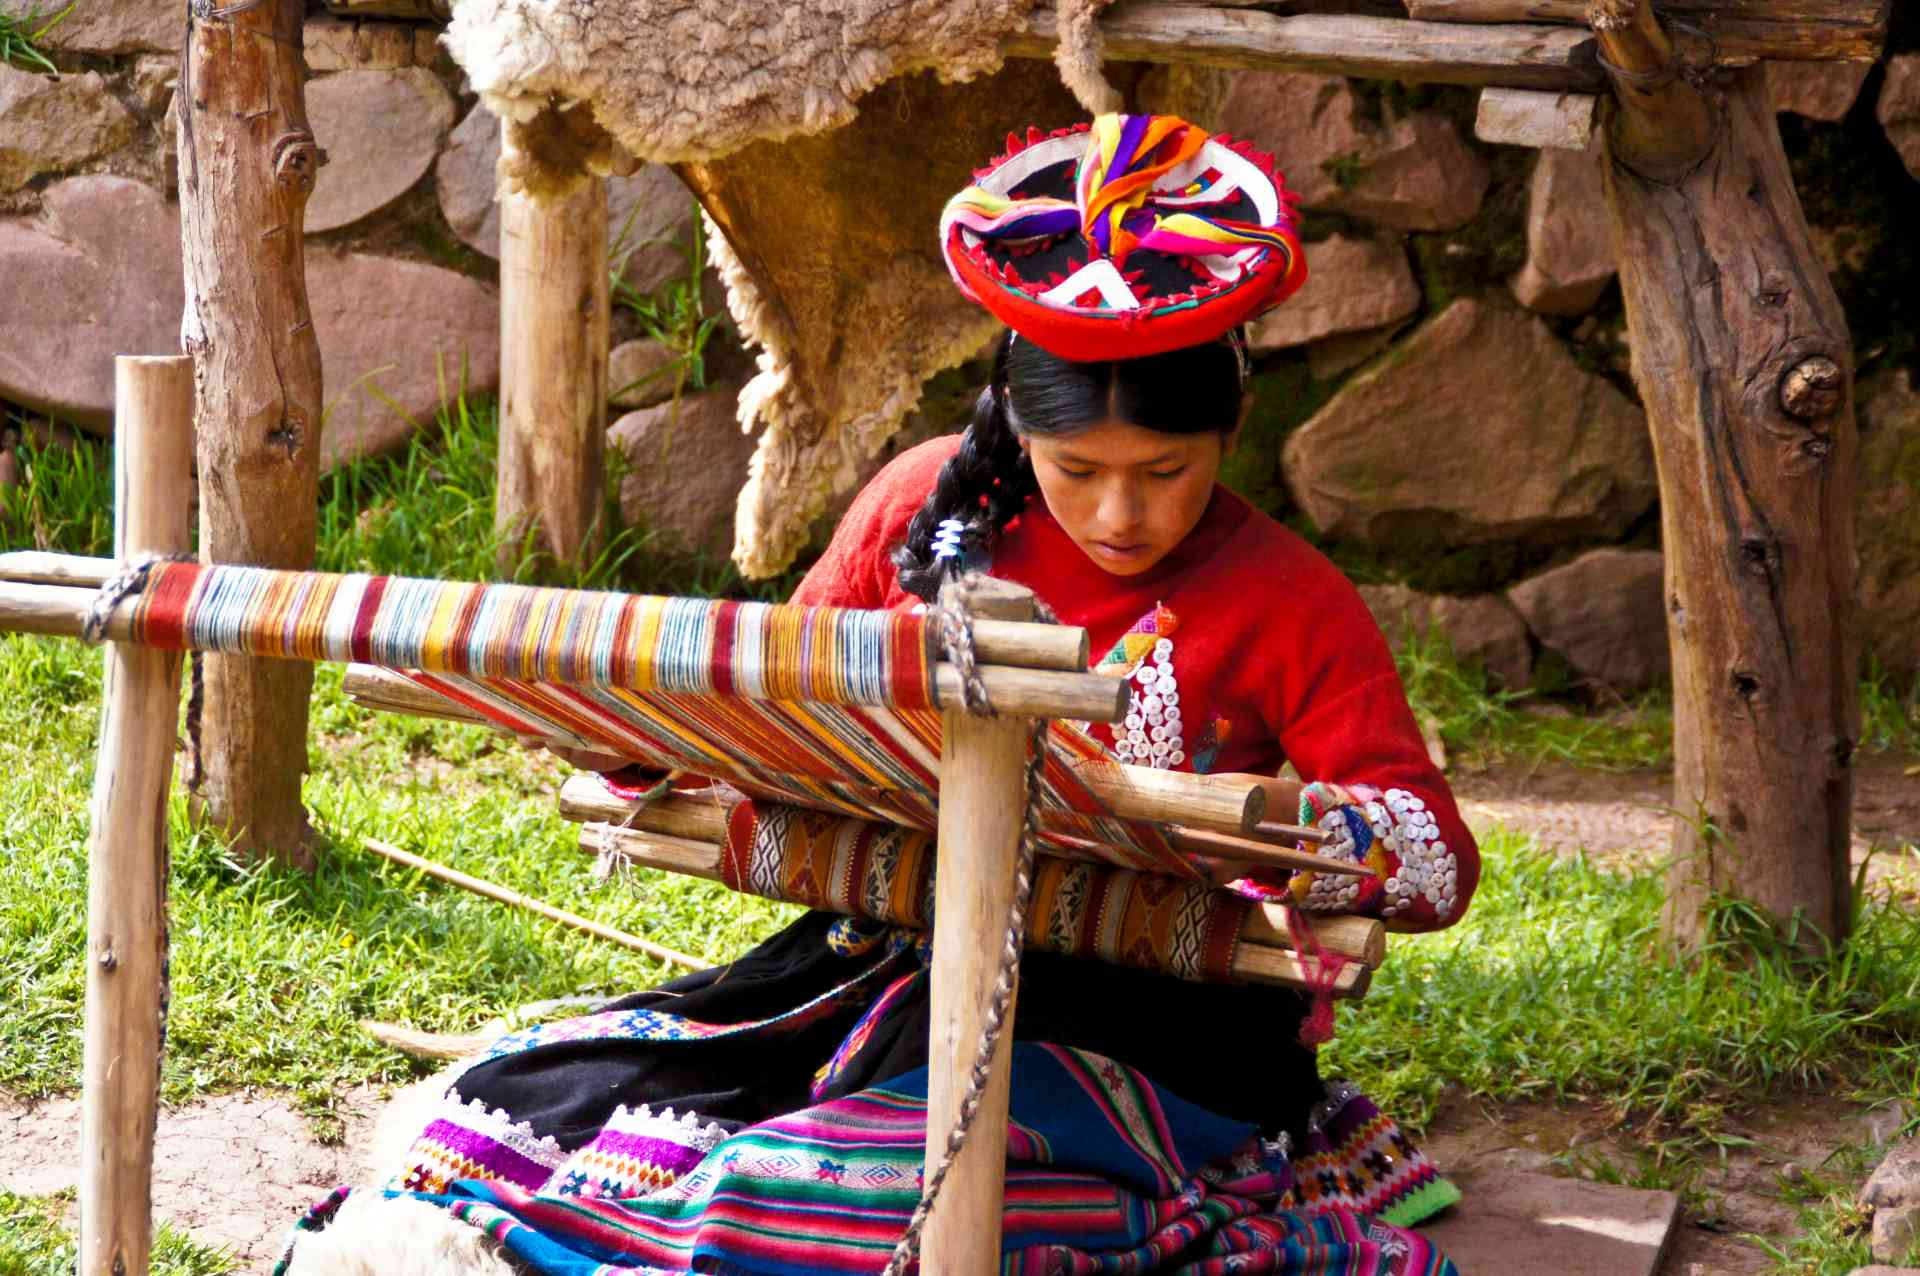 A local weaver in Peru by Priscilla Aster